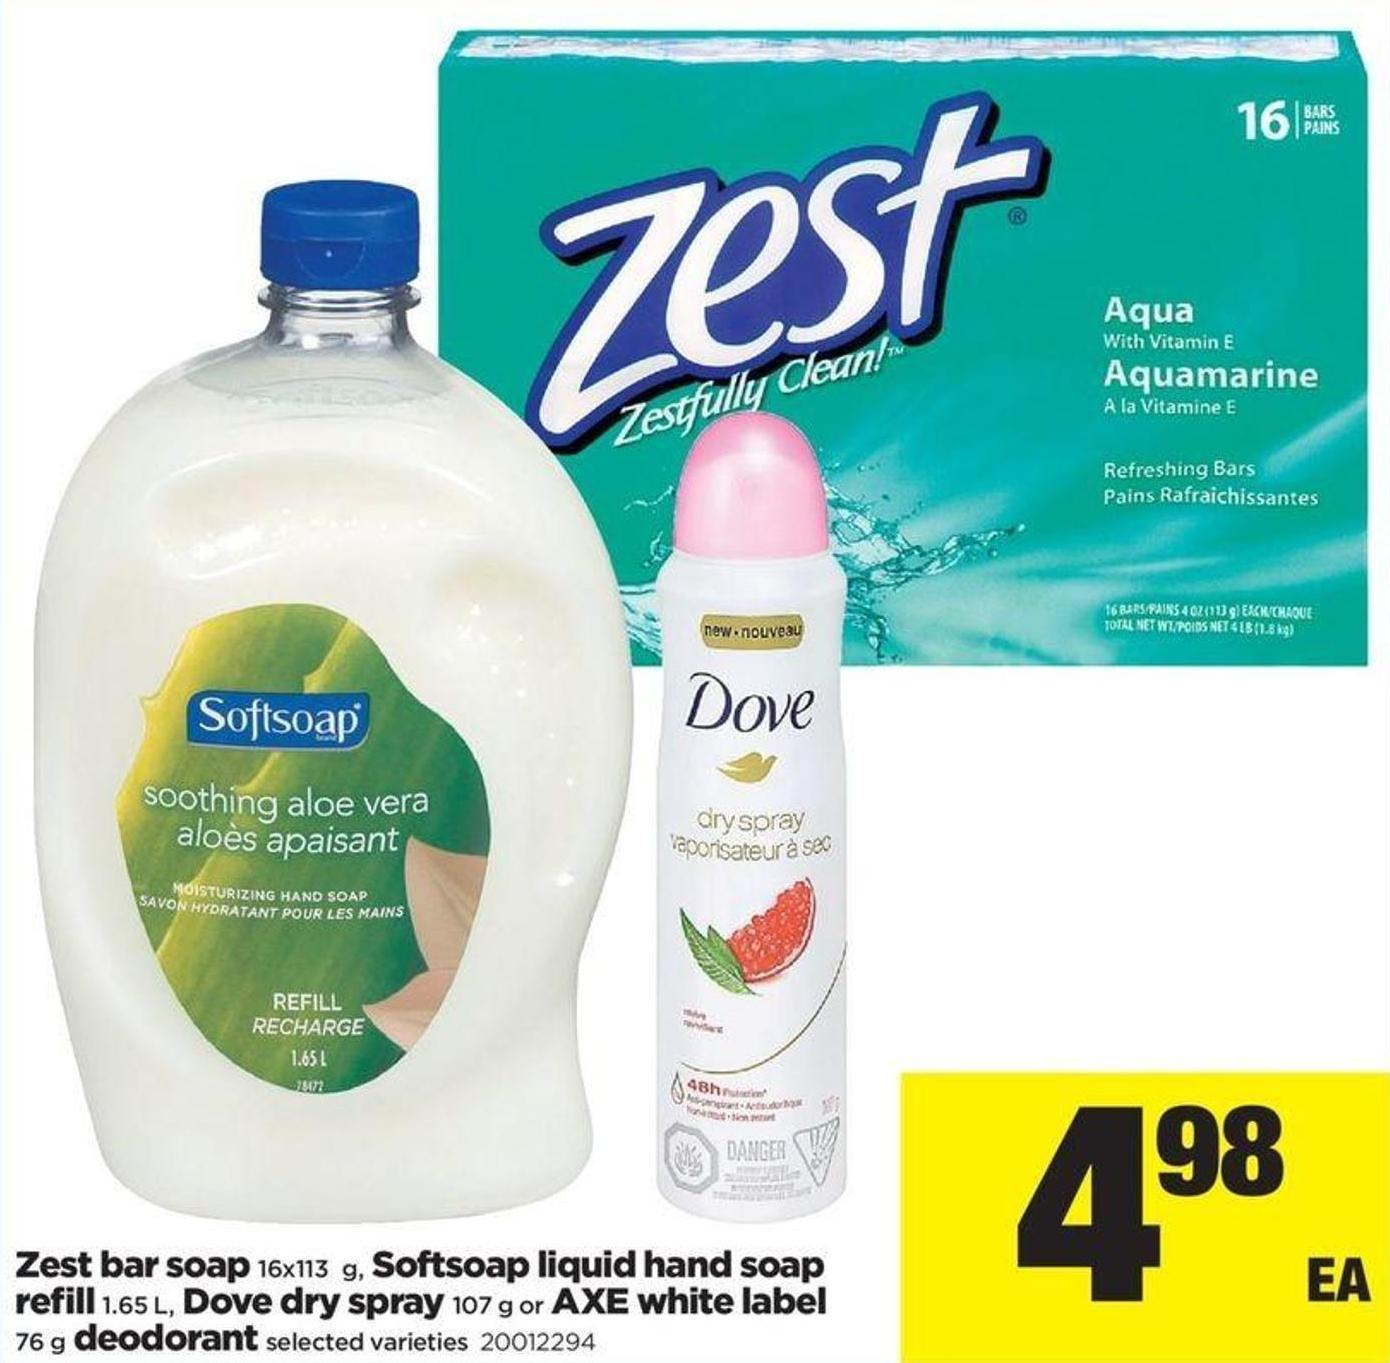 Zest Bar Soap - 16x113 G - Softsoap Liquid Hand Soap Refill - 1.65 L - Dove Dry Spray - 107 G Or Axe White Label - 76 G Deodorant